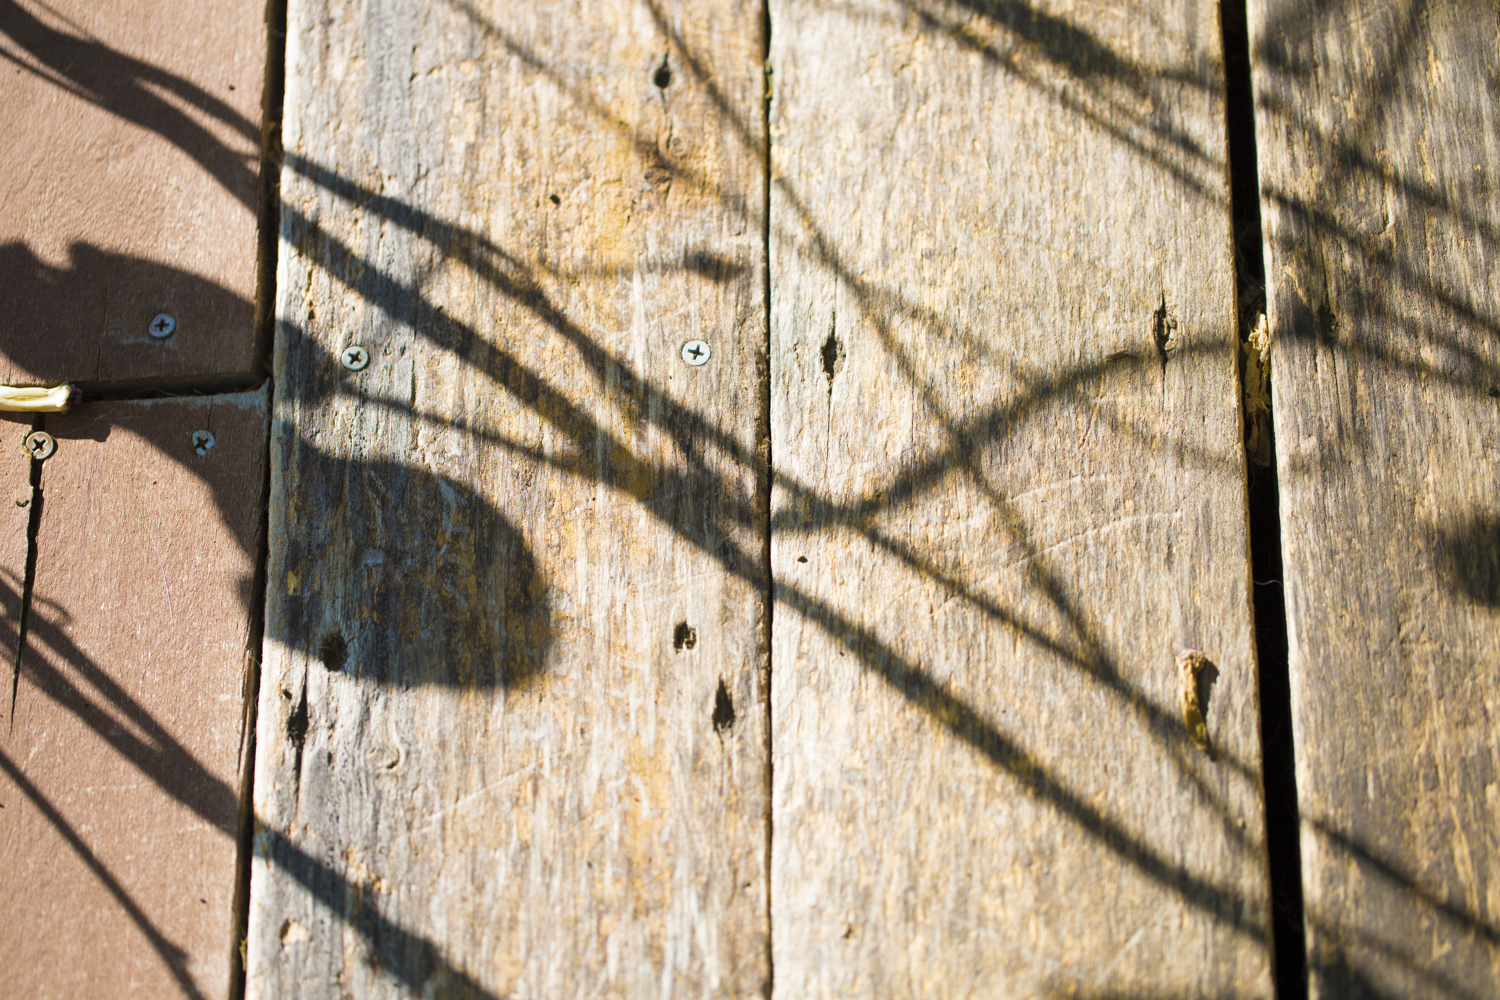 Shadows of the morning glories danced across the porch planks...